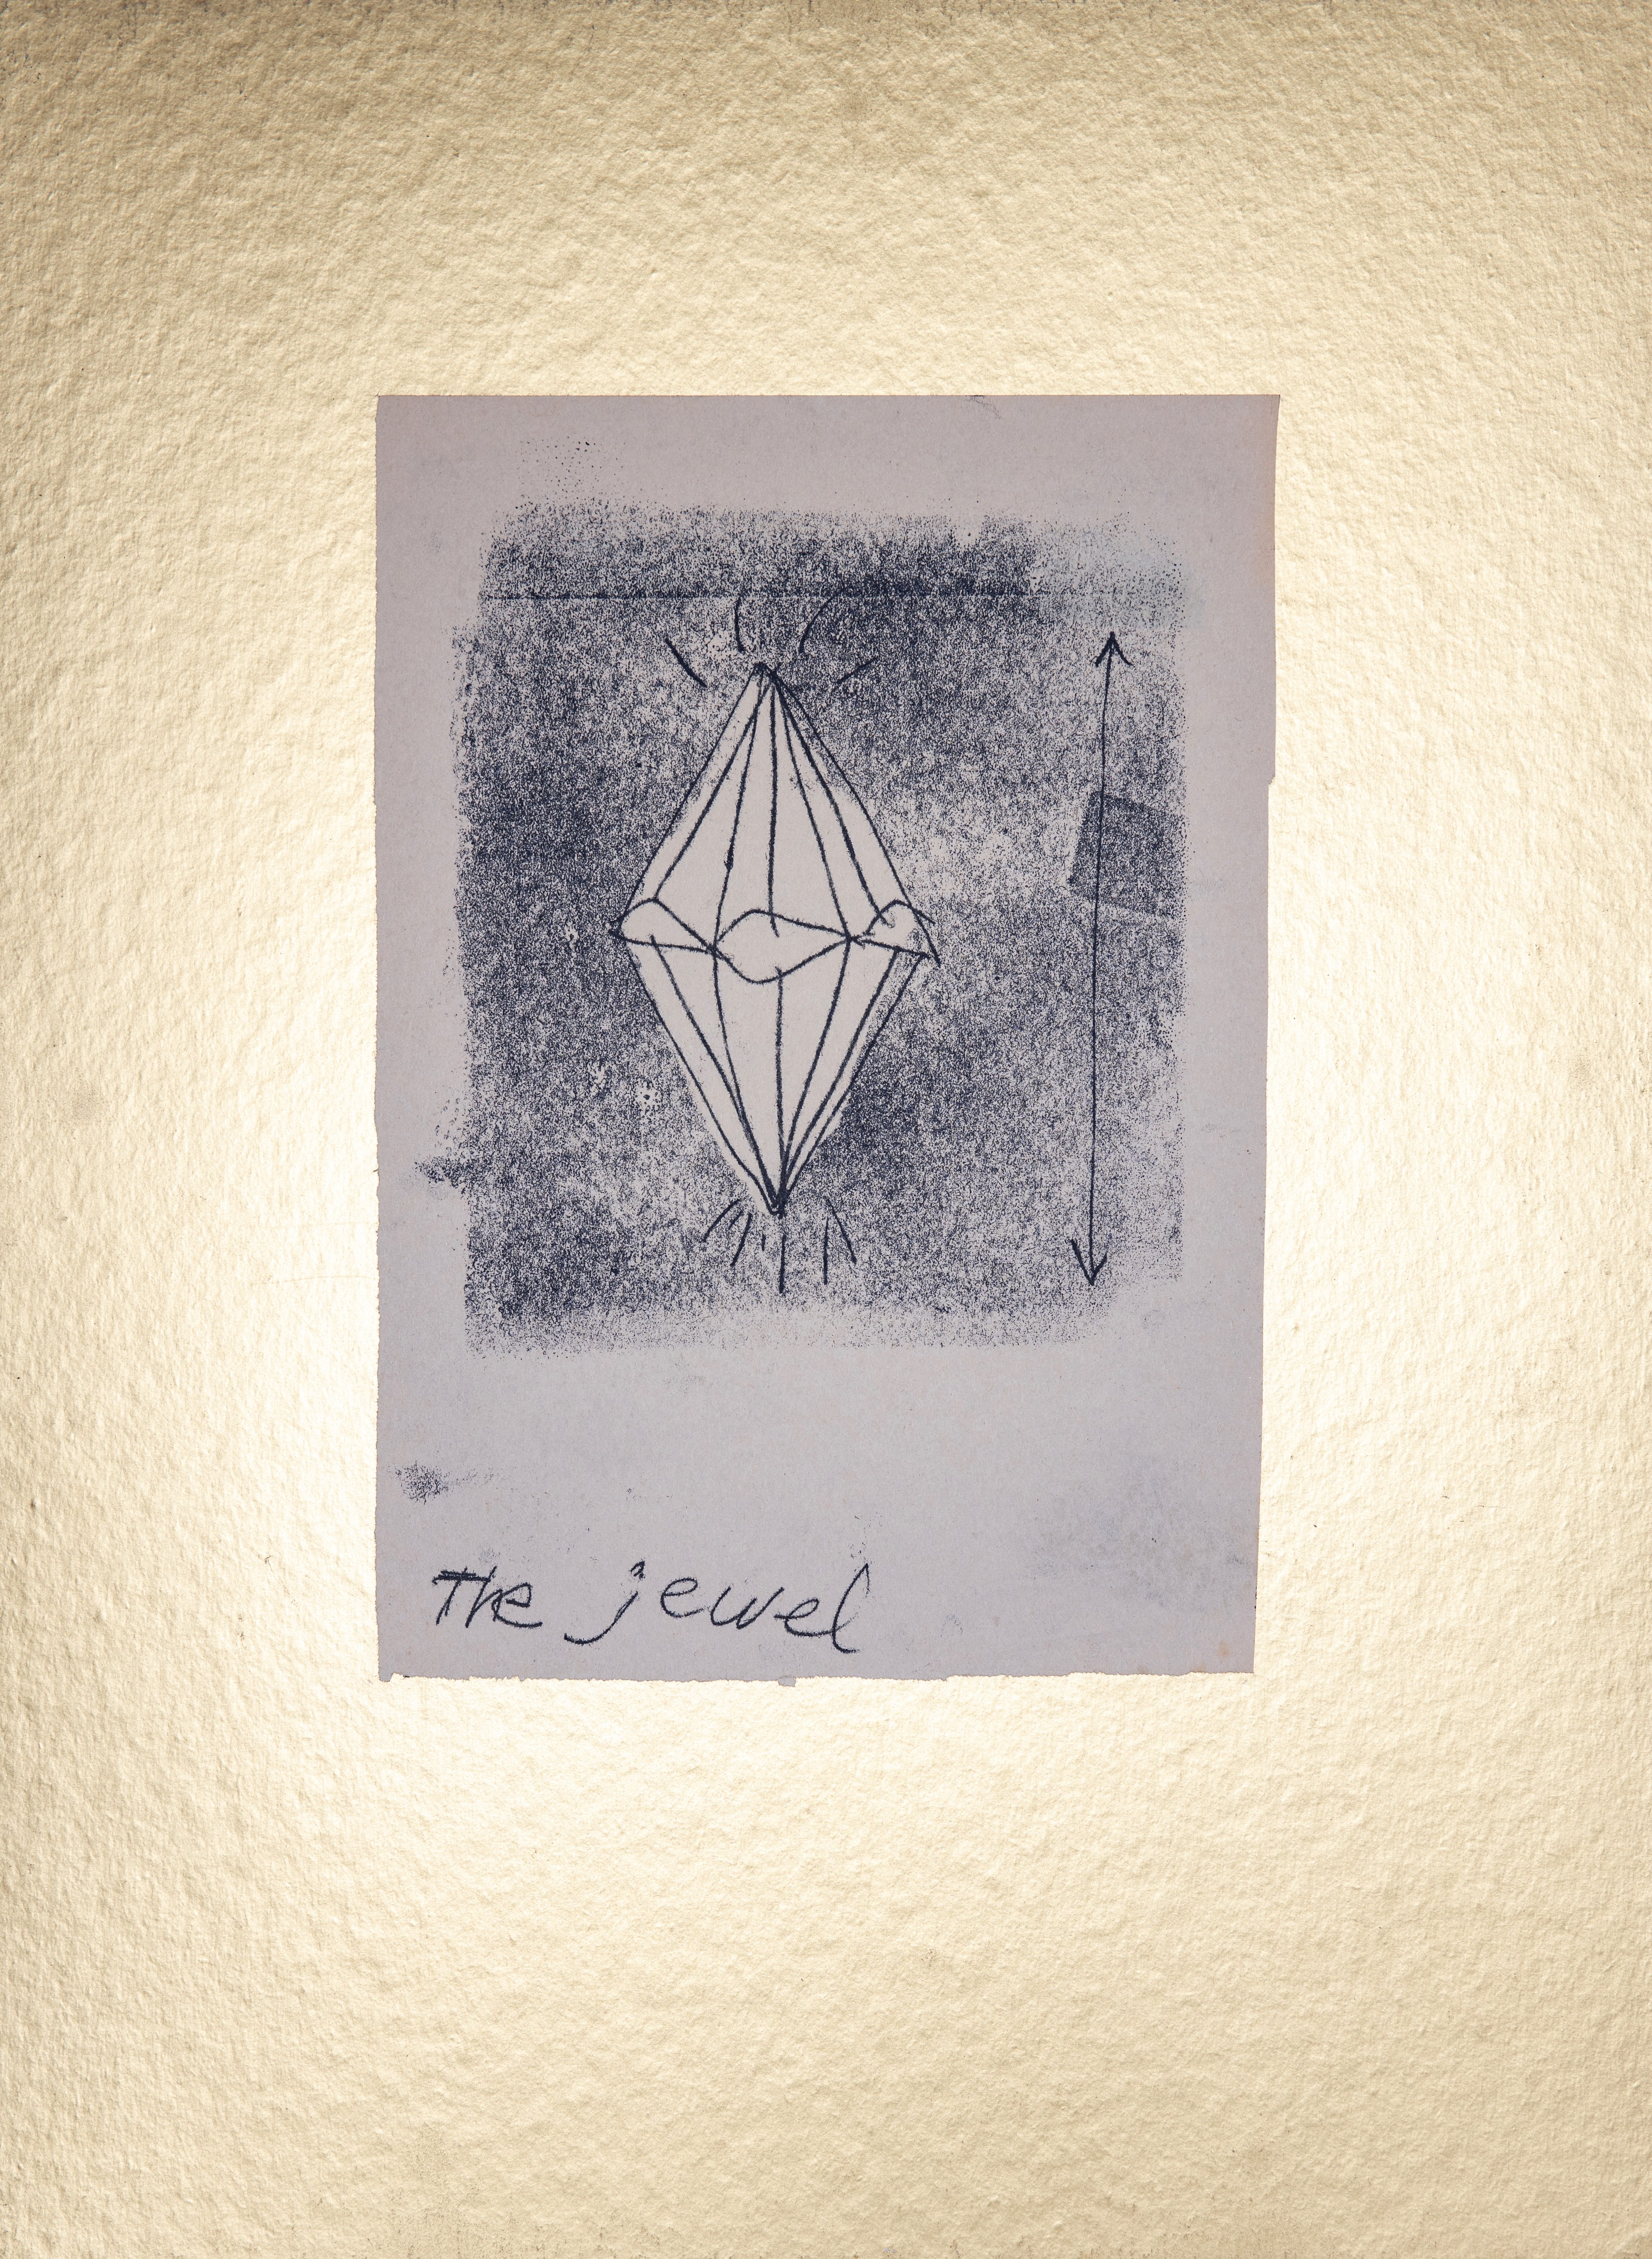 The Jewel